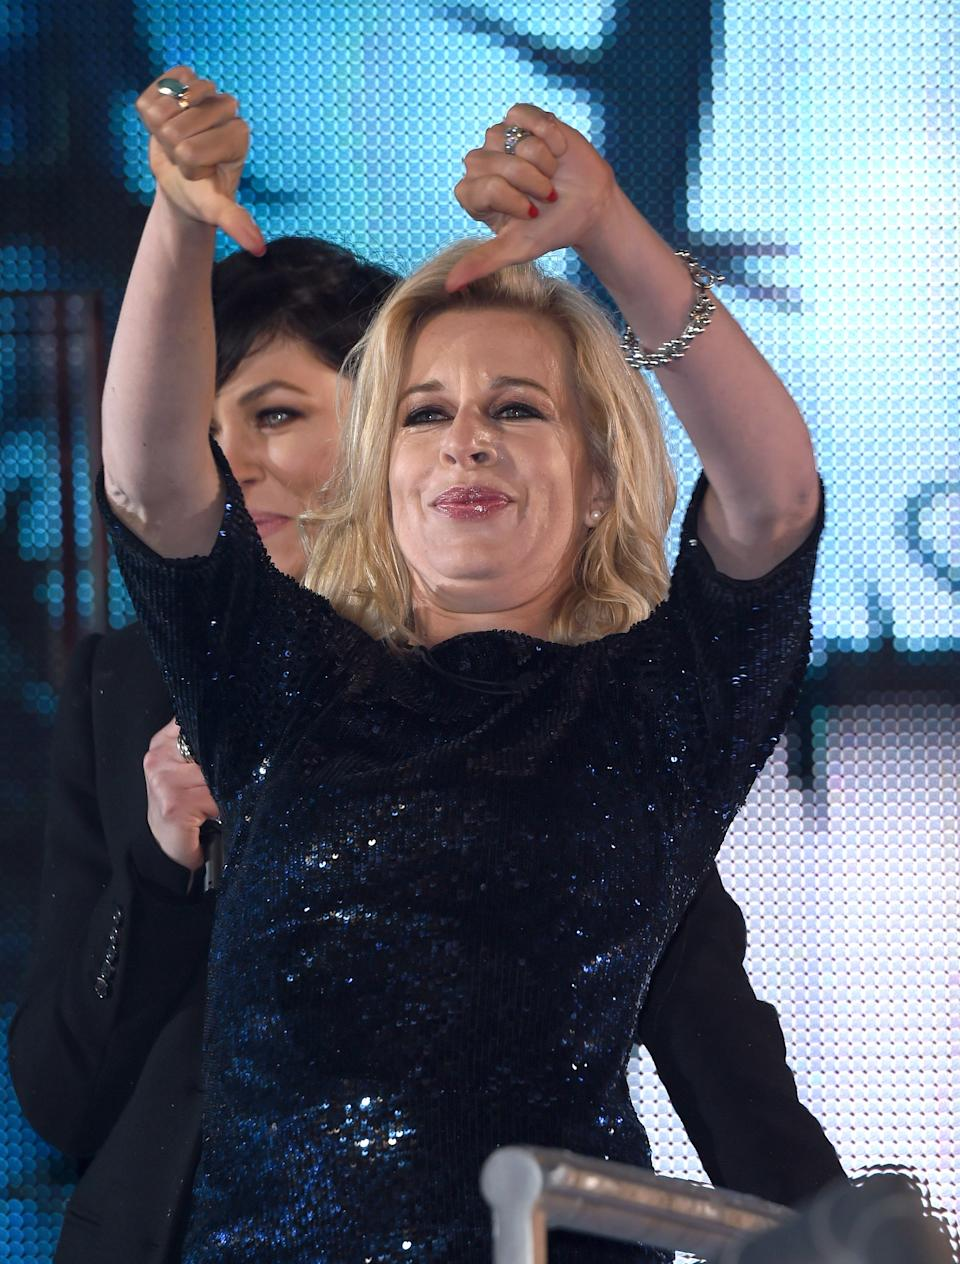 Katie Hopkins was deported from Australia this week after bragging about trying to break quarantine rules, but it seems she'll still get paid for the trip. Photo: Getty